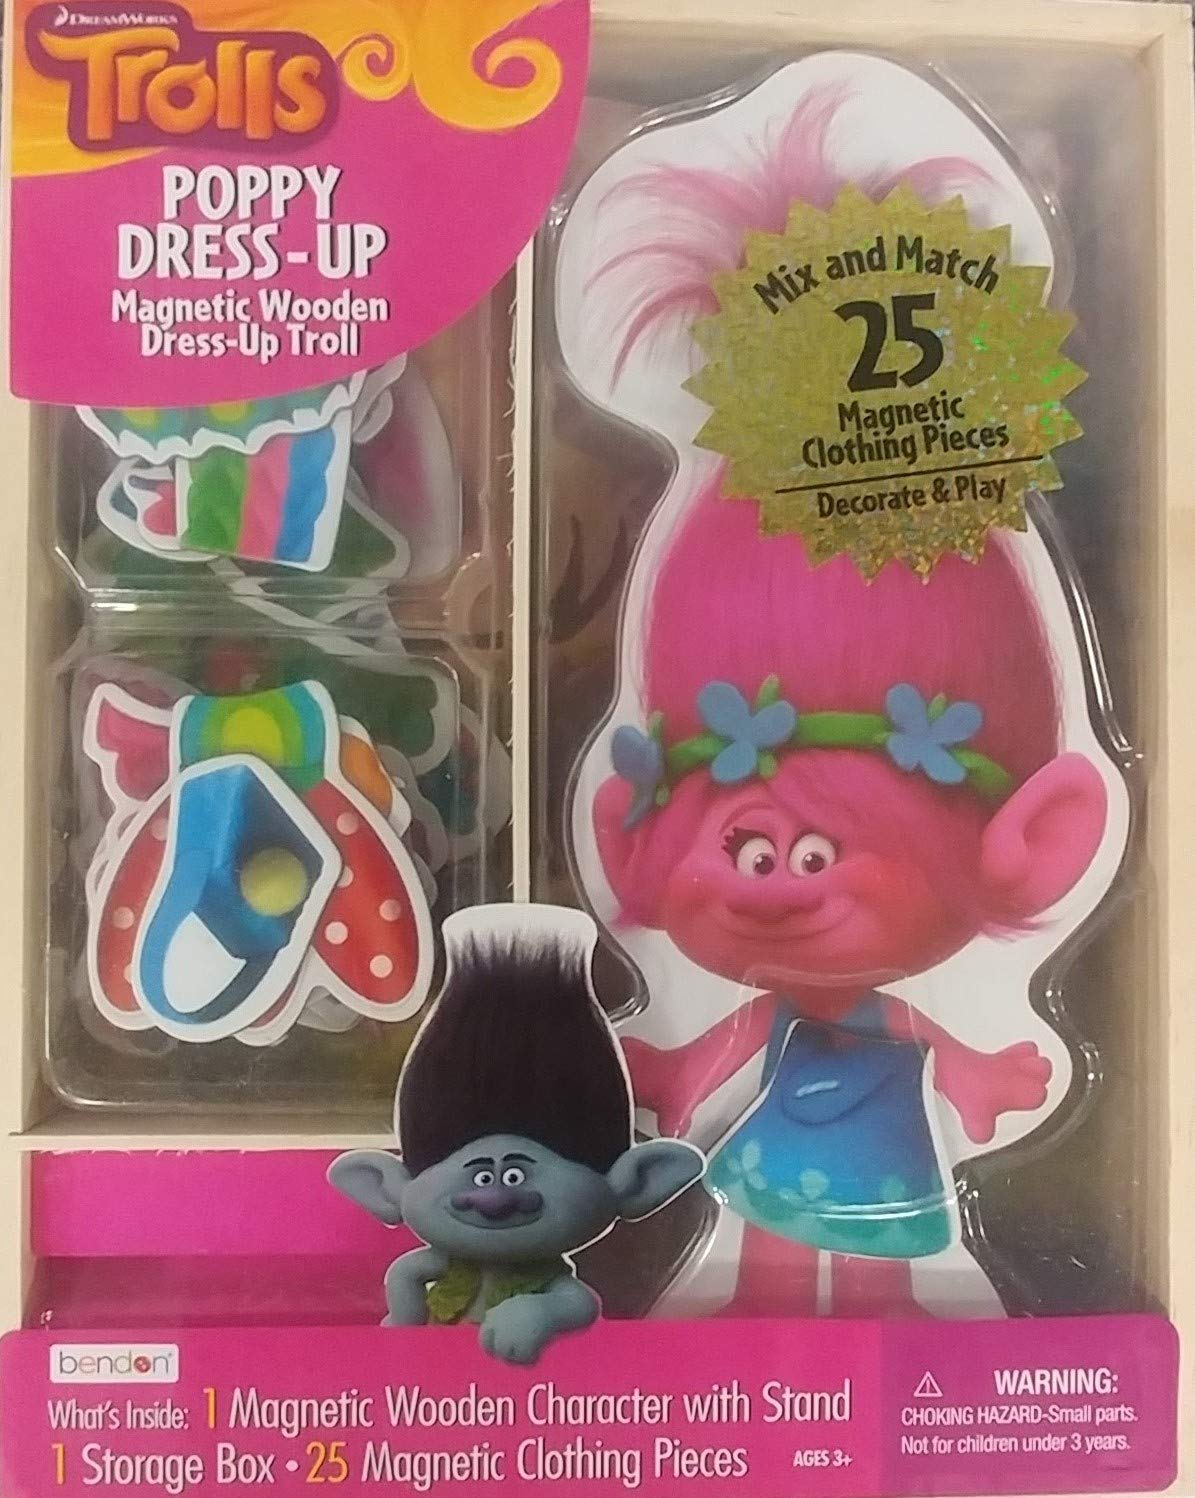 Bendon Trolls Poppy Dress-Up Magnetic Wooden Mix and Match